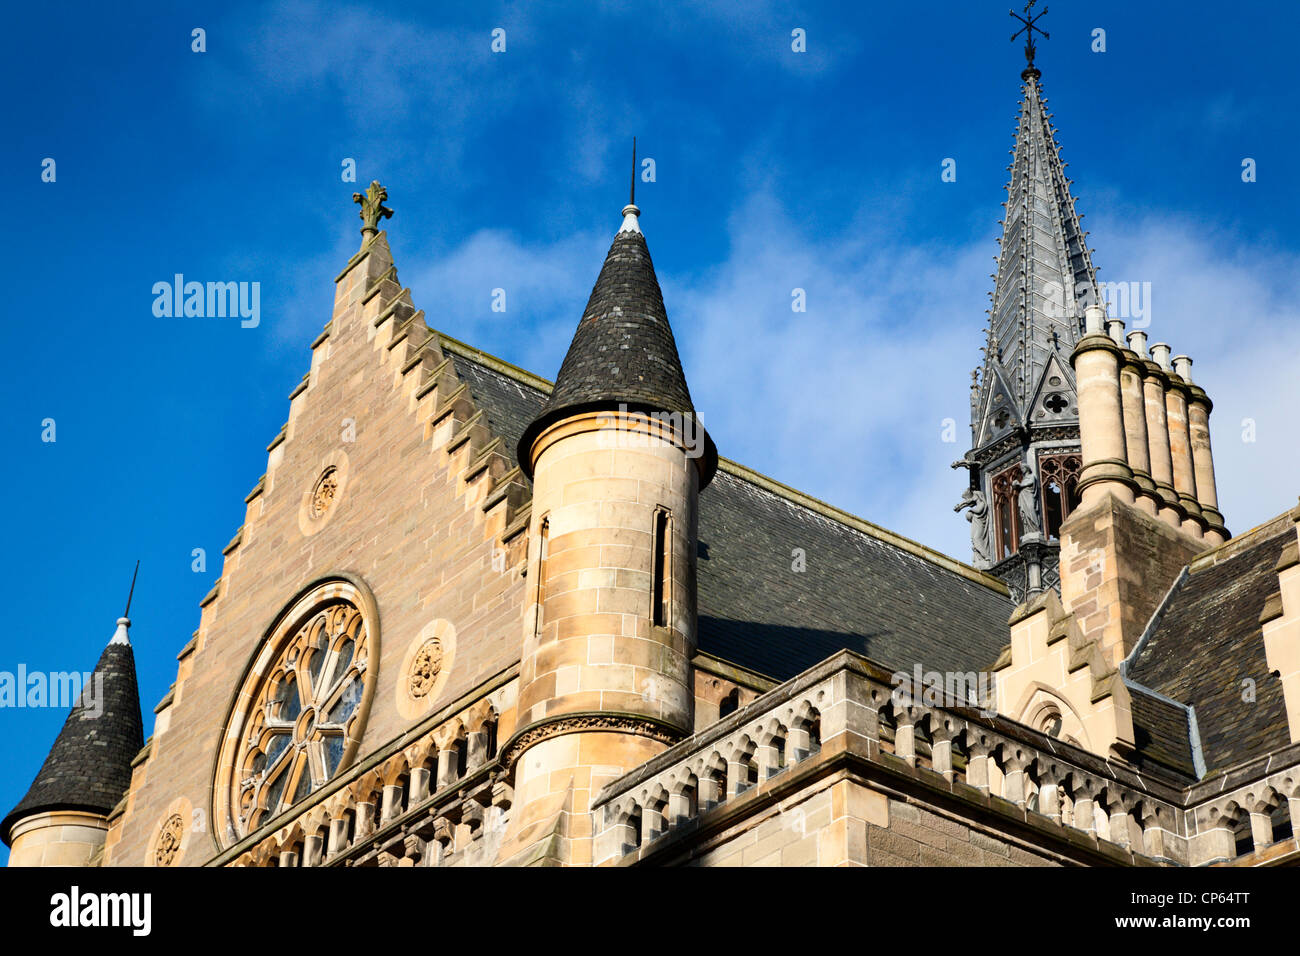 The McManus Art Gallery and Museum Dundee Scotland - Stock Image